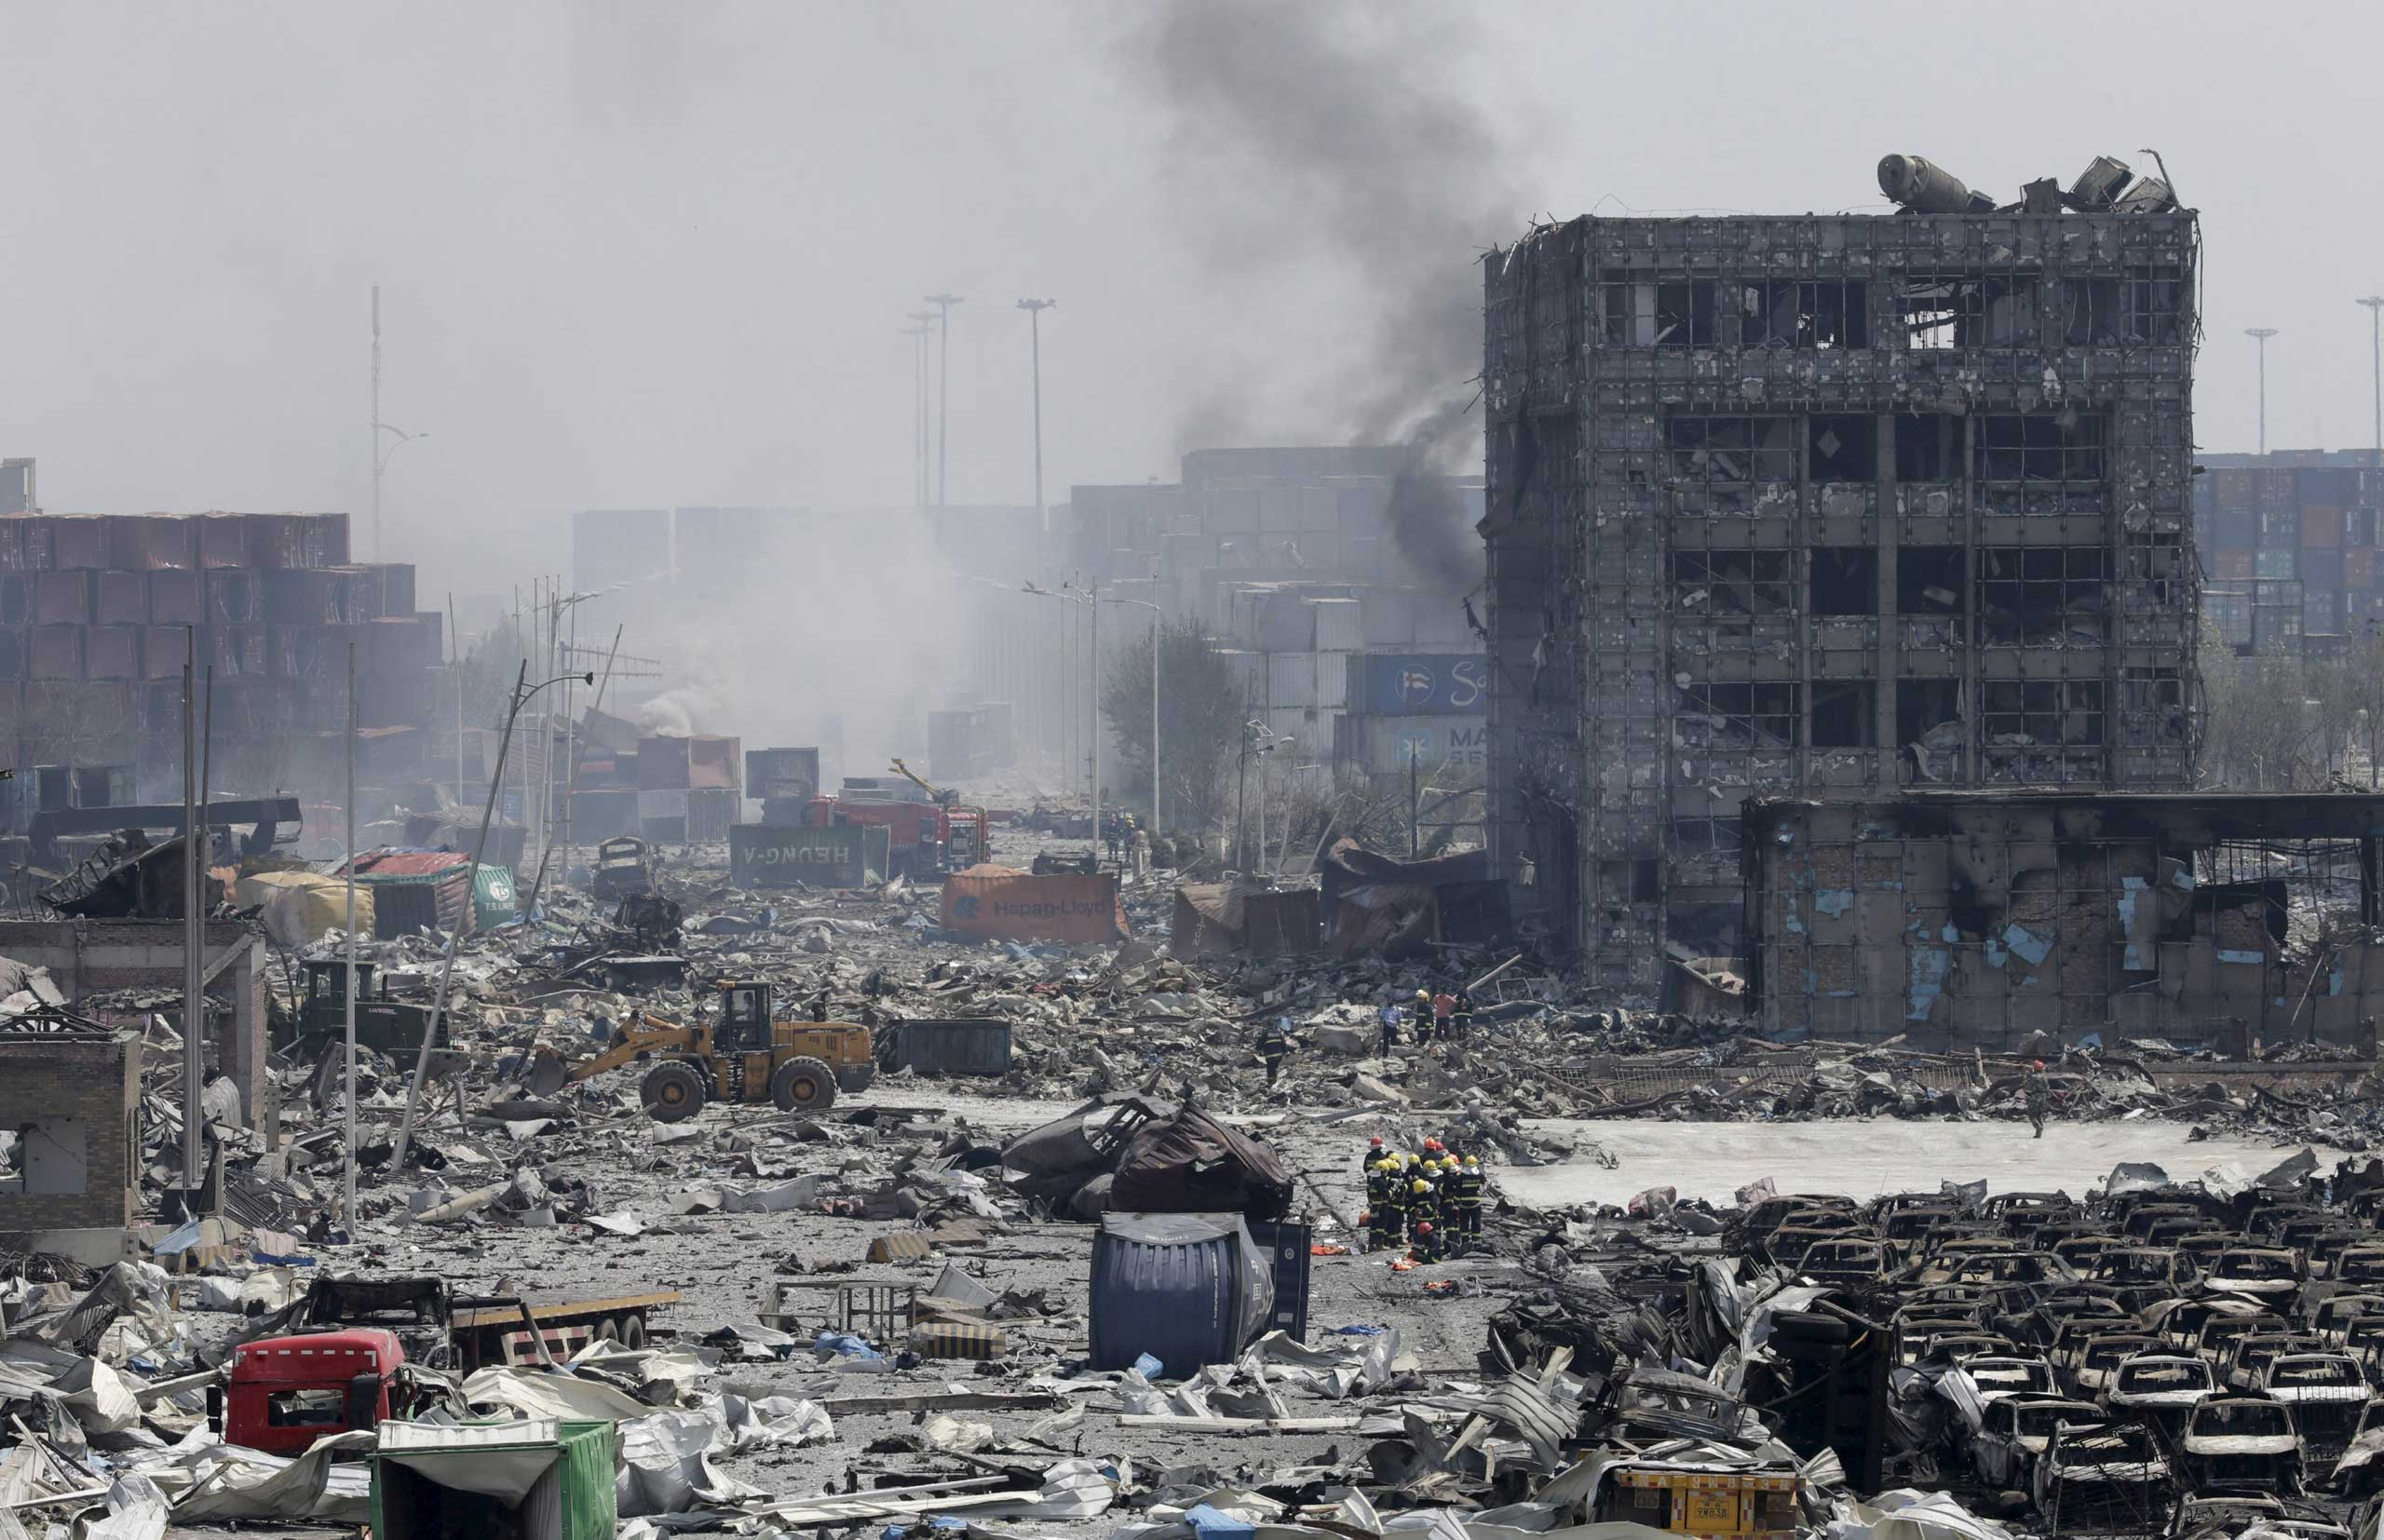 Smoke rises from the site of the explosions at the Binhai new district, Tianjin, on Aug. 13, 2015.